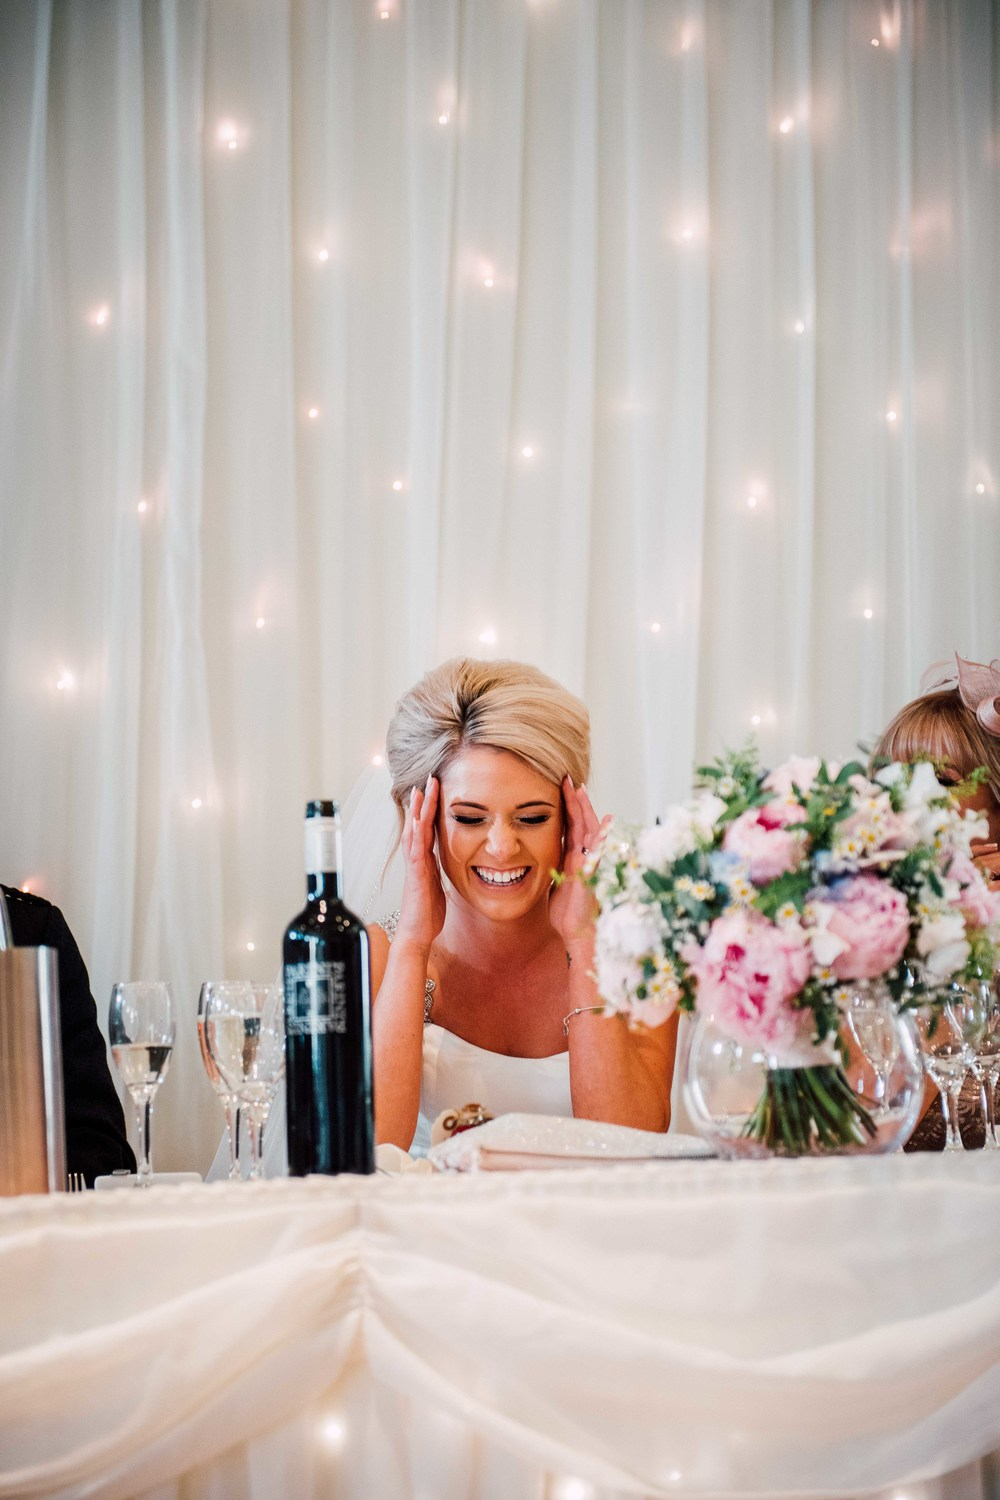 Dumfries-Wedding-Tom-Cairns-Photography-Easterbrook-Hall-Blush-Pink-Wedding-Details 59